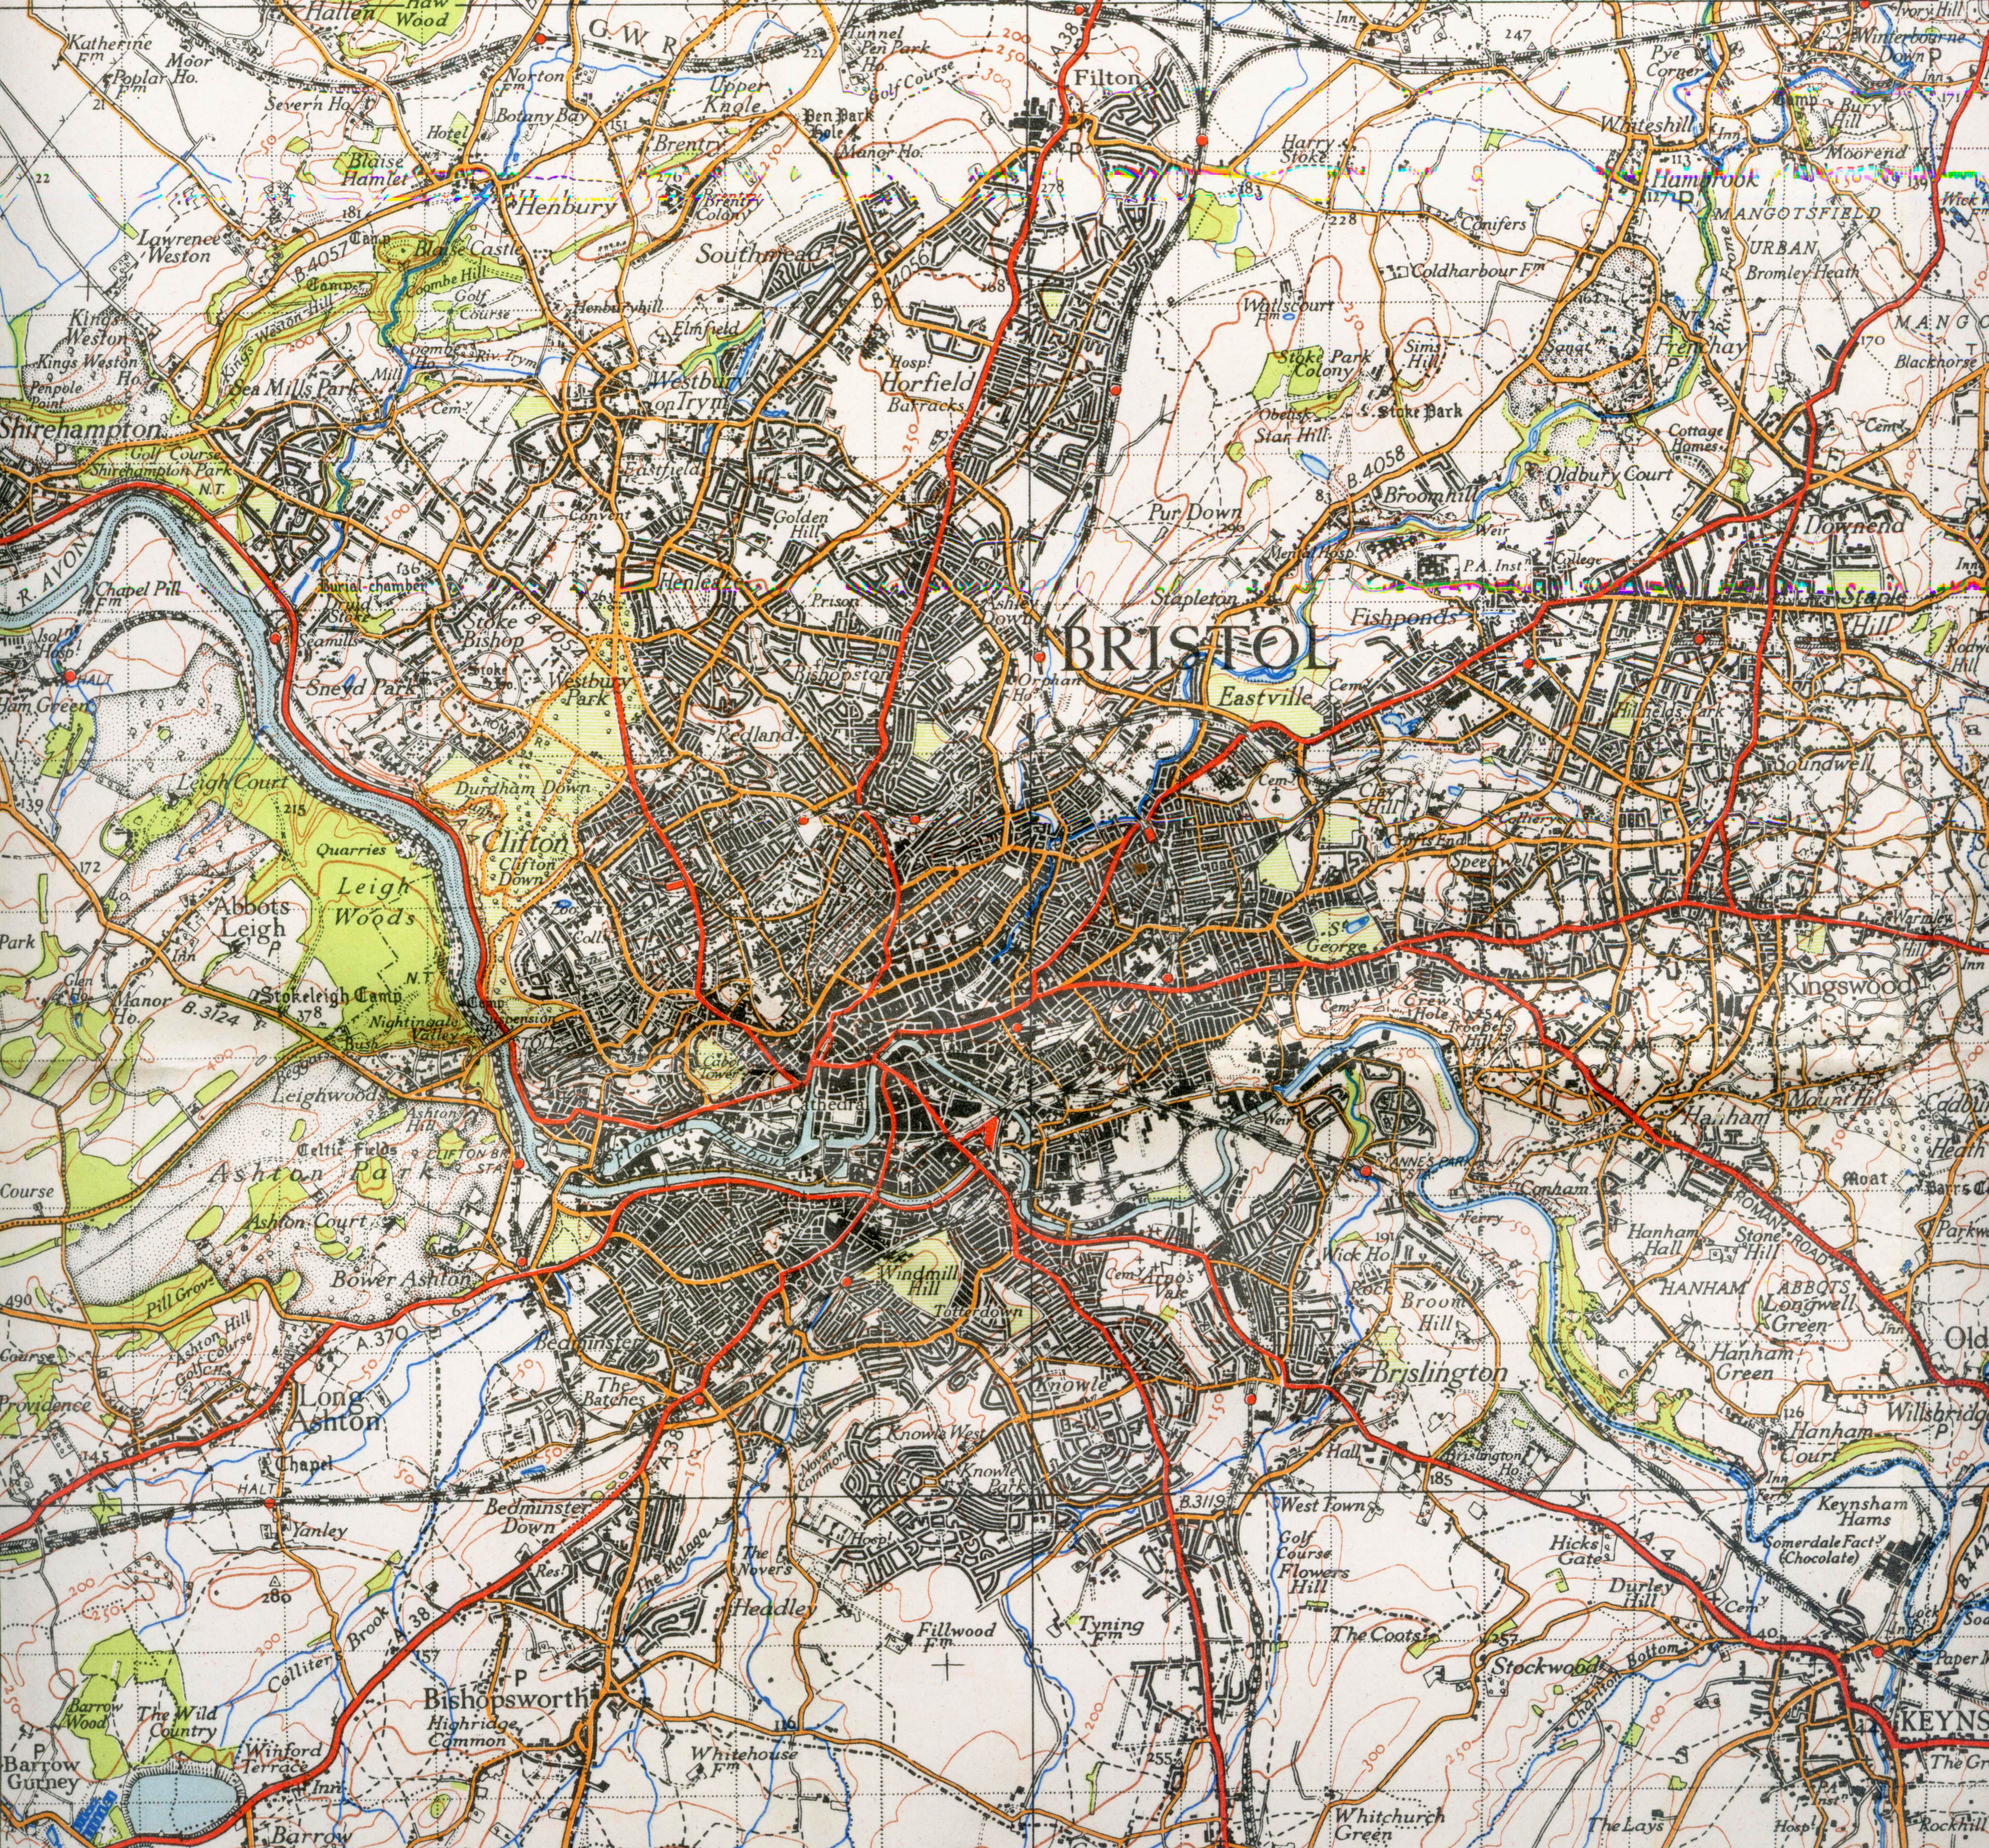 Bristol On The Map Of England.A 1946 Map Of Bristol In England Image Free Stock Photo Public